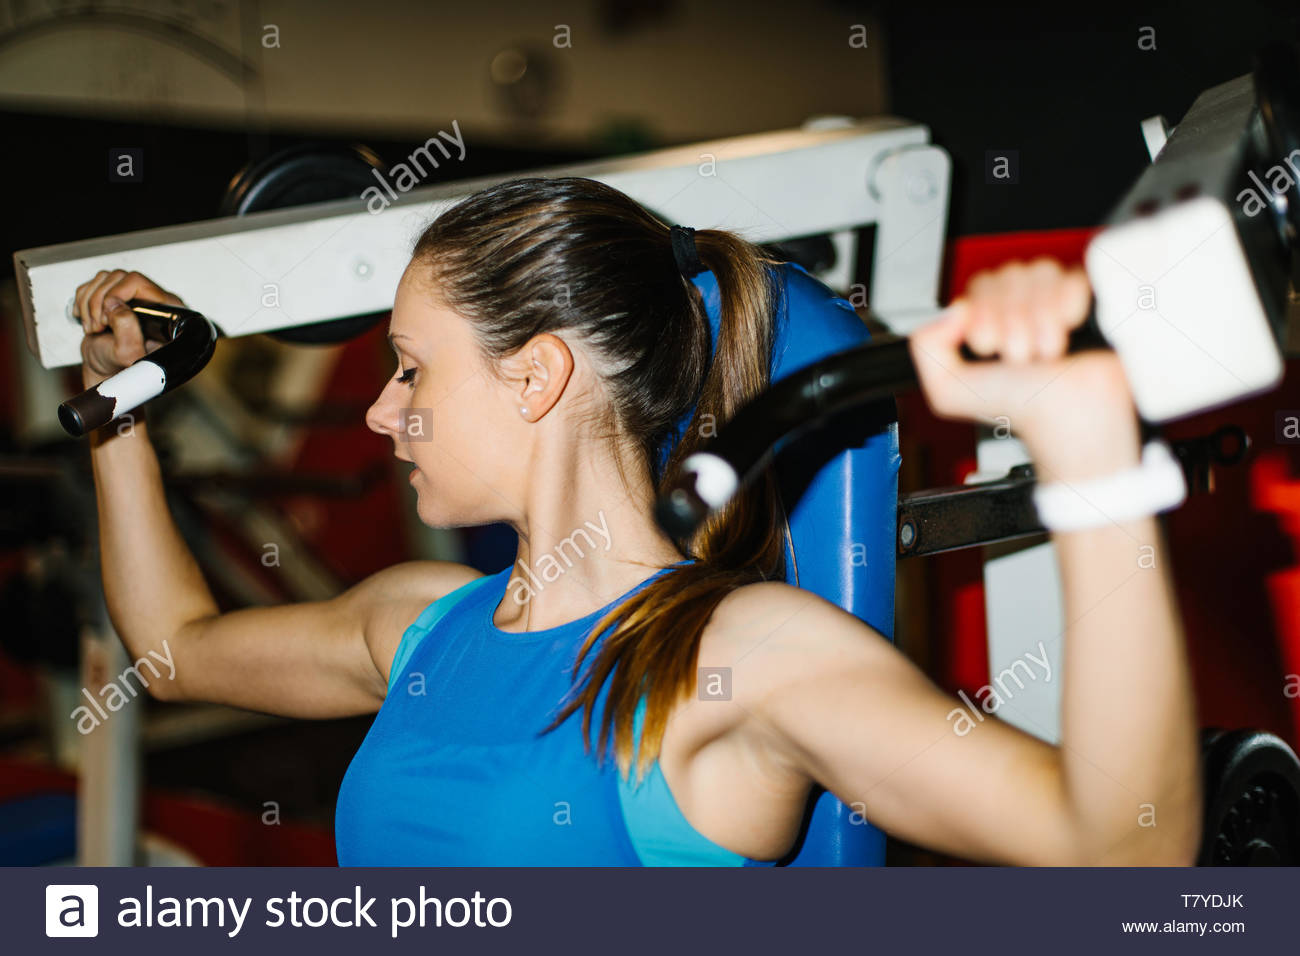 Young fitness woman working out in the gym. Shoulder machine exercise. - Stock Image